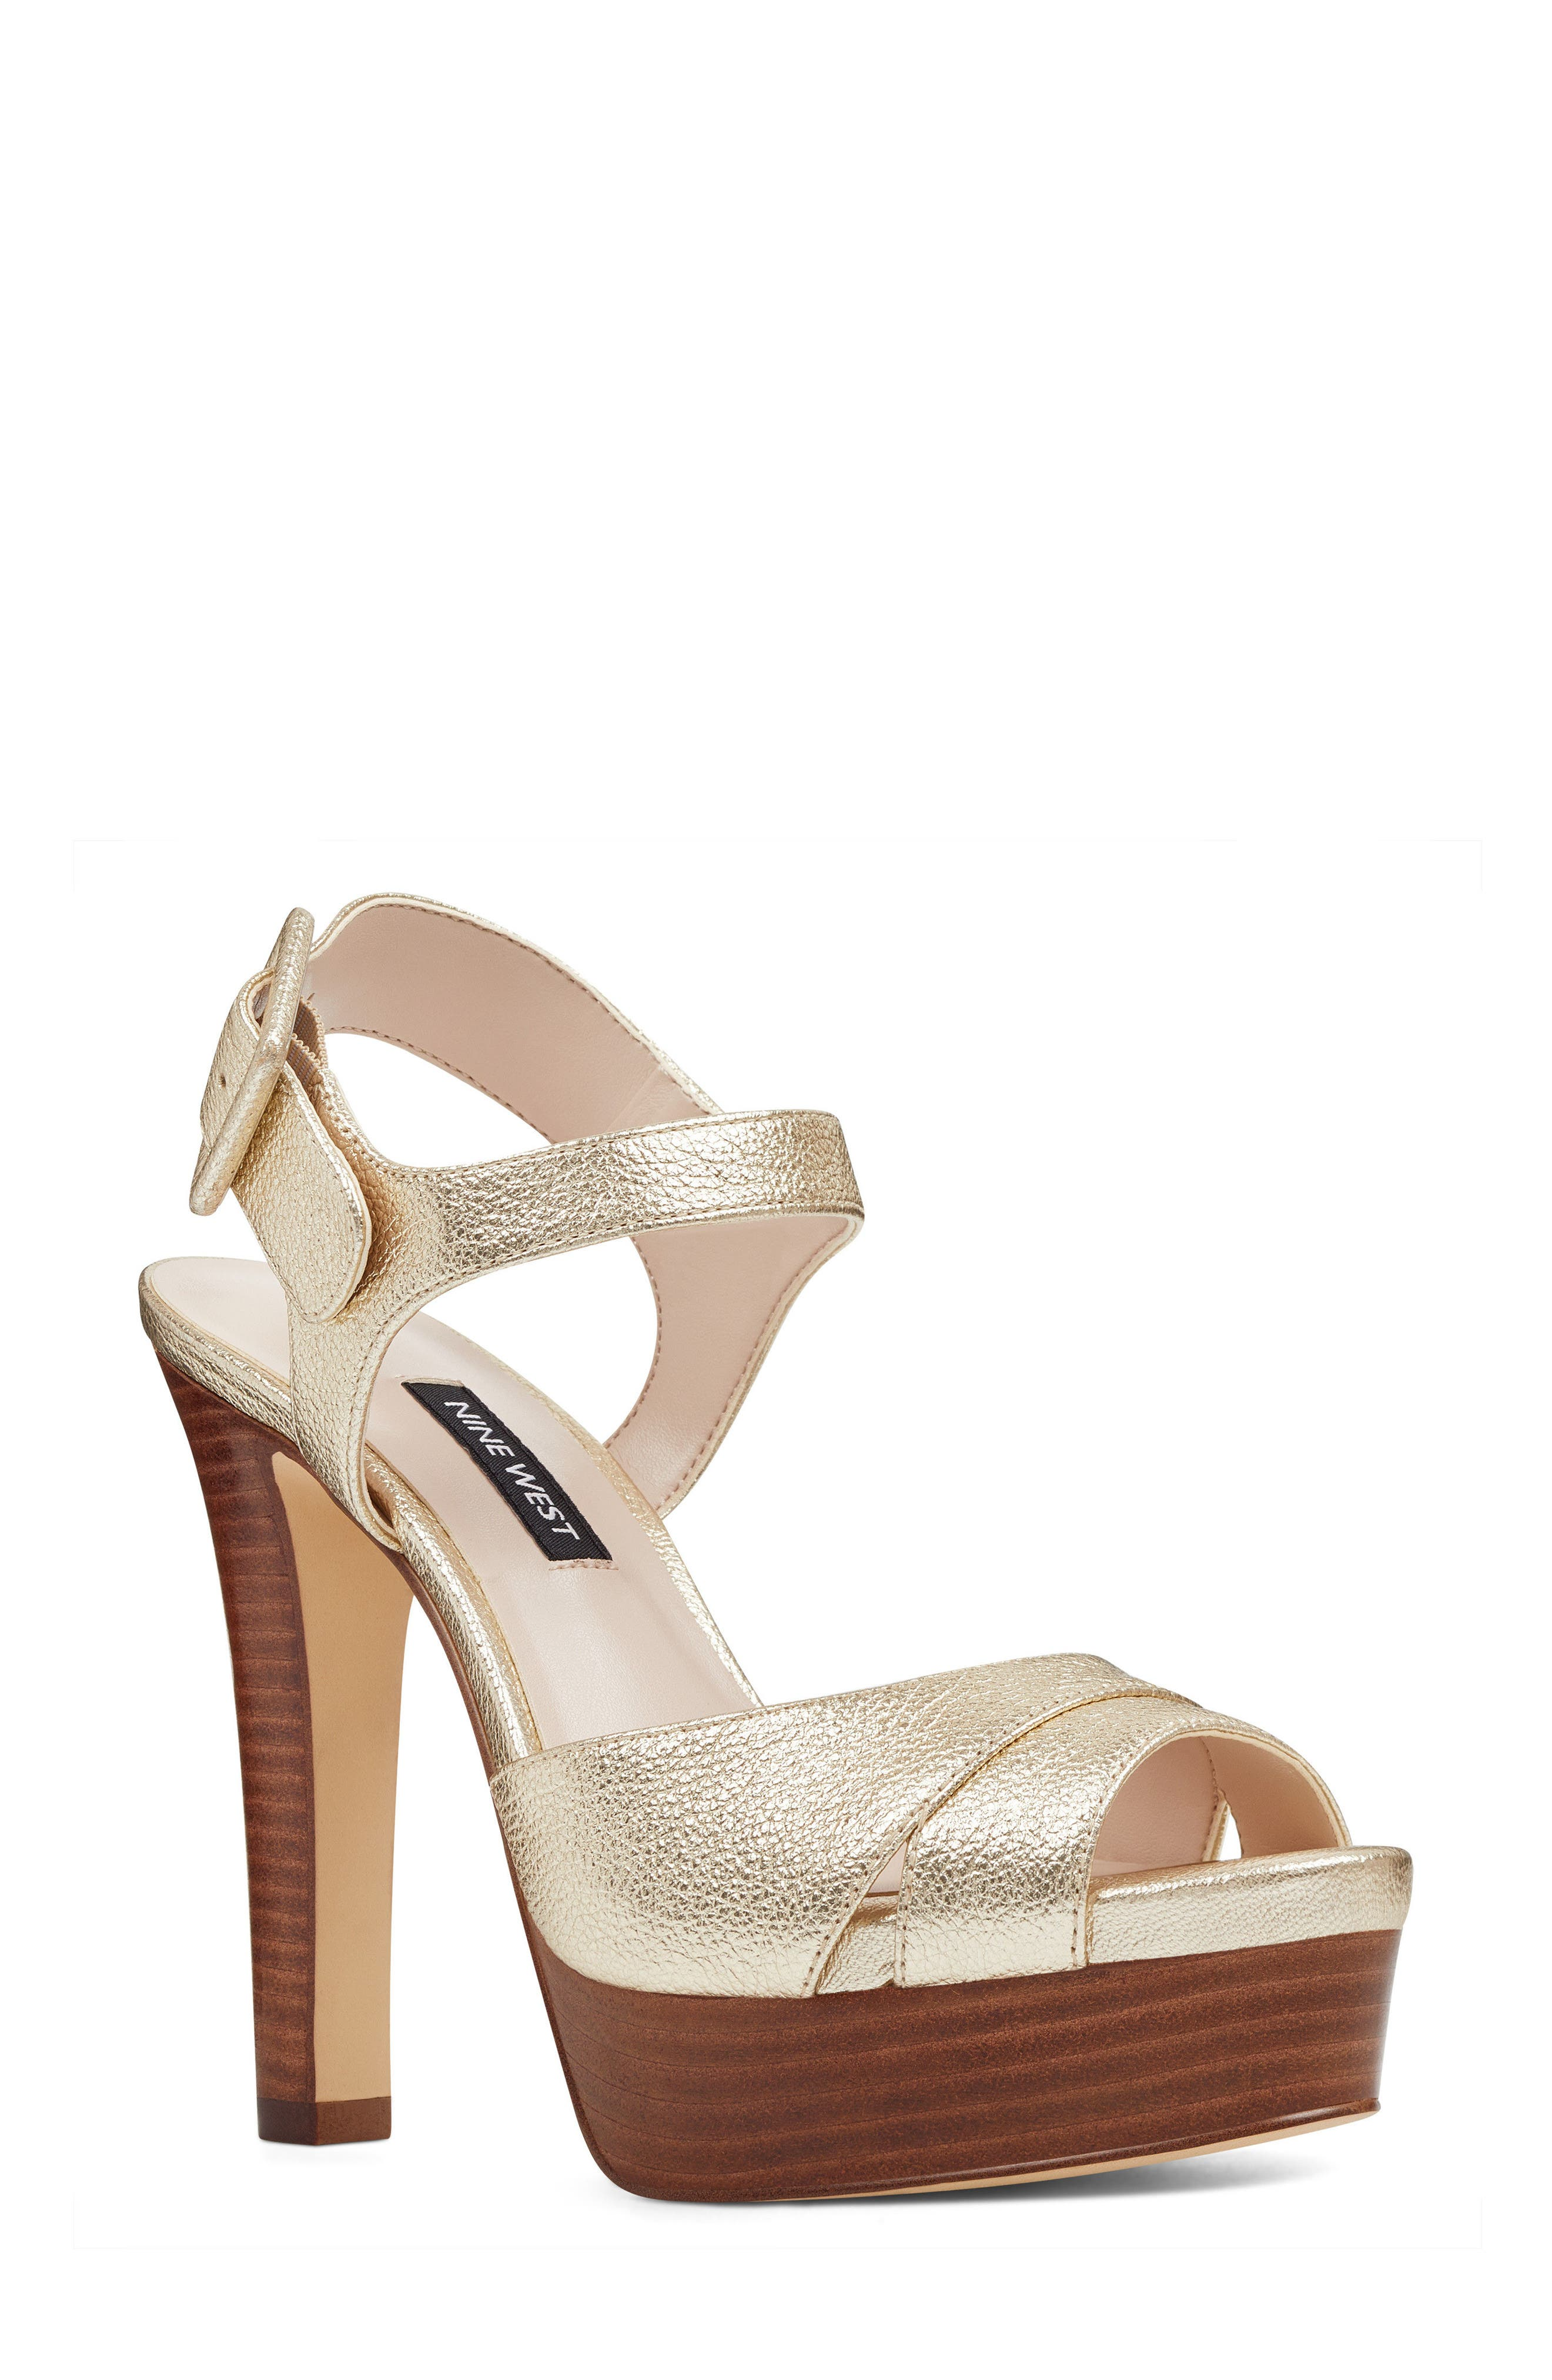 Ibyn Platform Sandal,                             Main thumbnail 1, color,                             Light Gold Leather